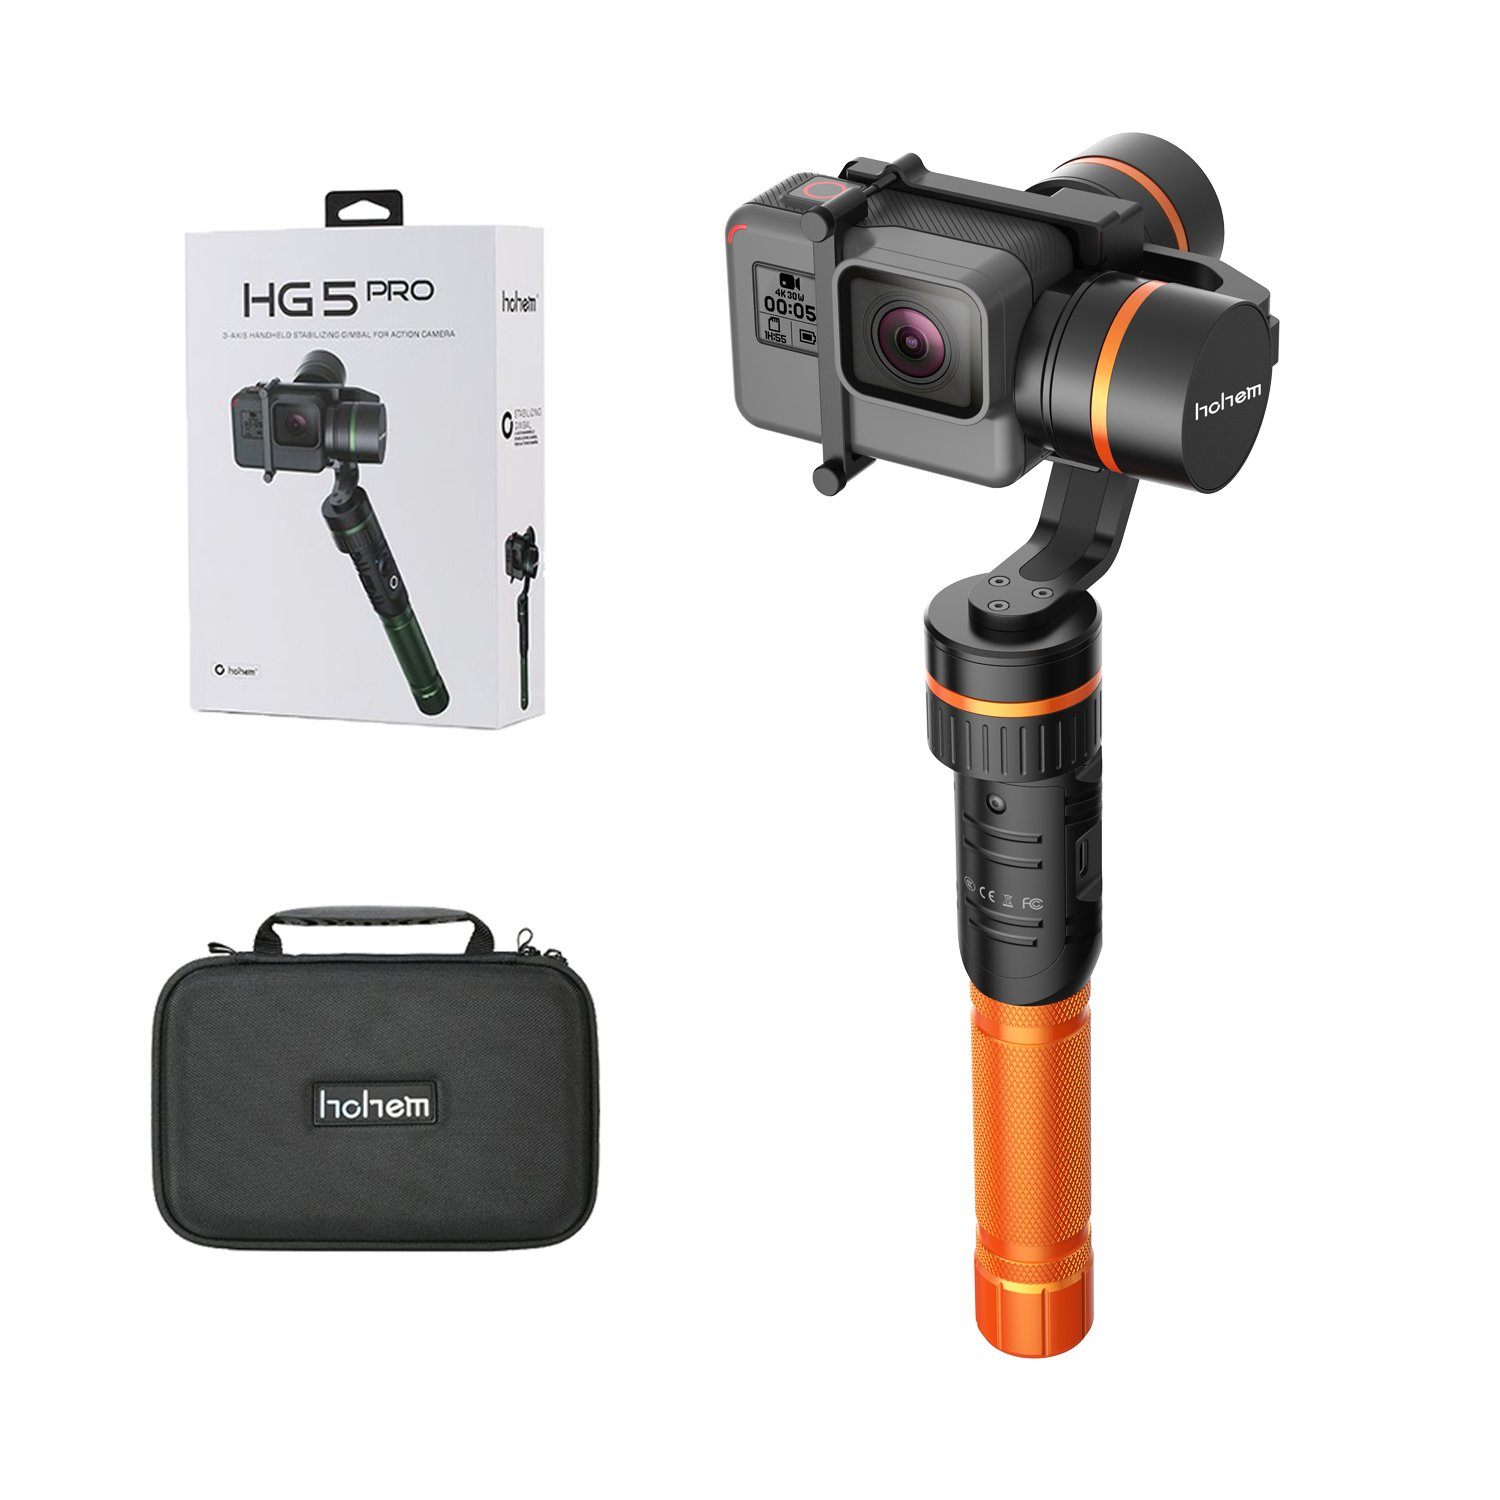 Gimbal Stabilizer, Hohem HG5 Updated 3-Axis Portable Gimbal Stabilizer for Gopro Hero5/4 and Action Cameras with Similar Dimensions (Orange) by Hohem